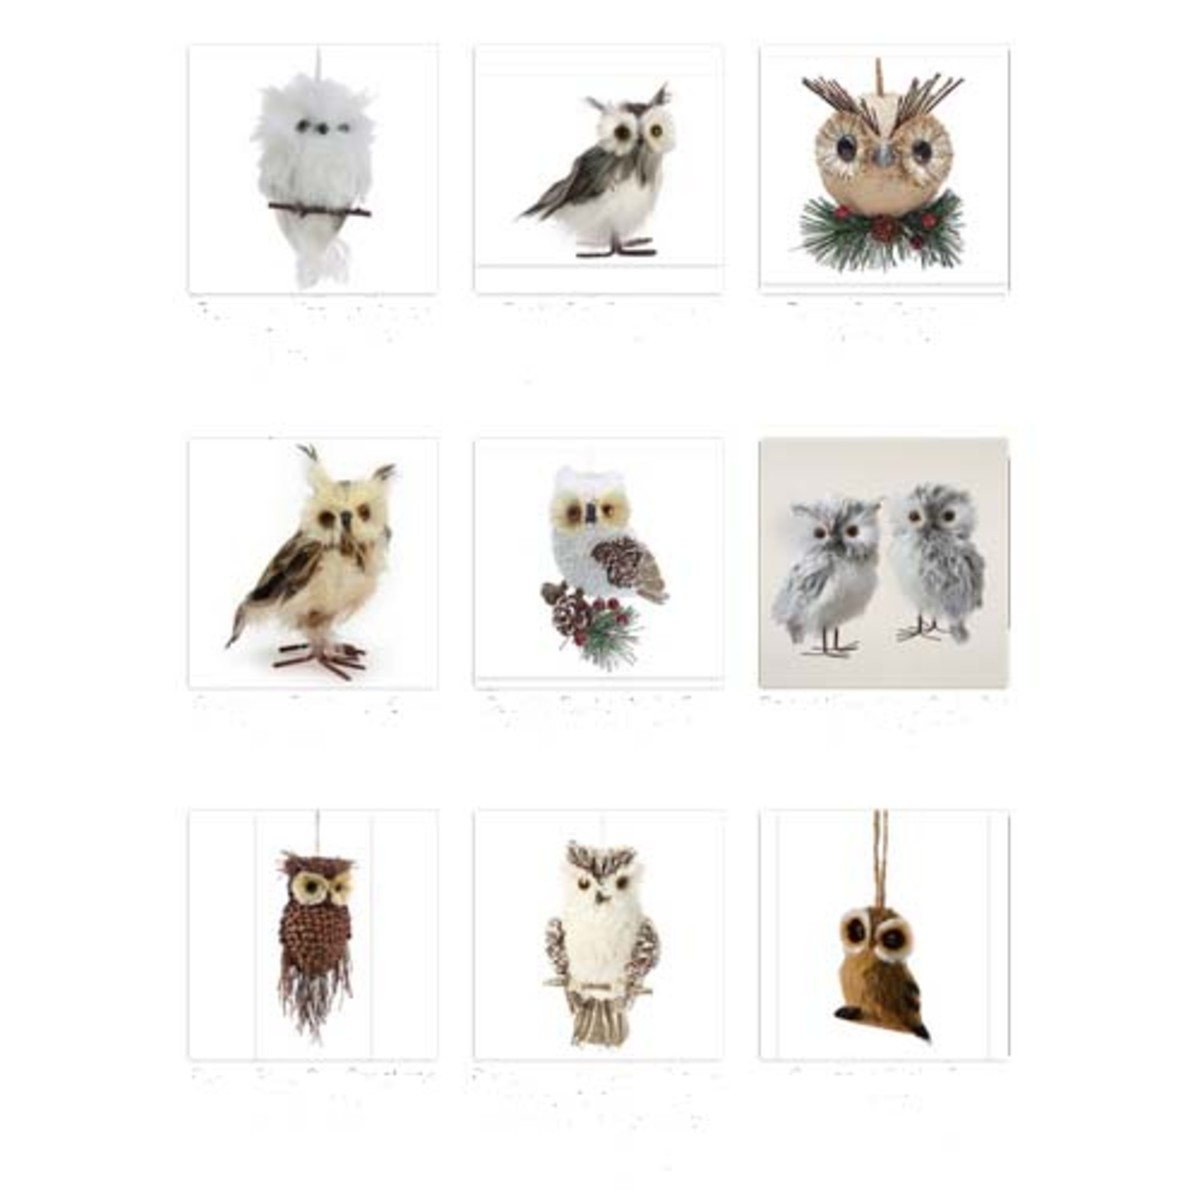 Some of the gorgeous owl Christmas ornaments available